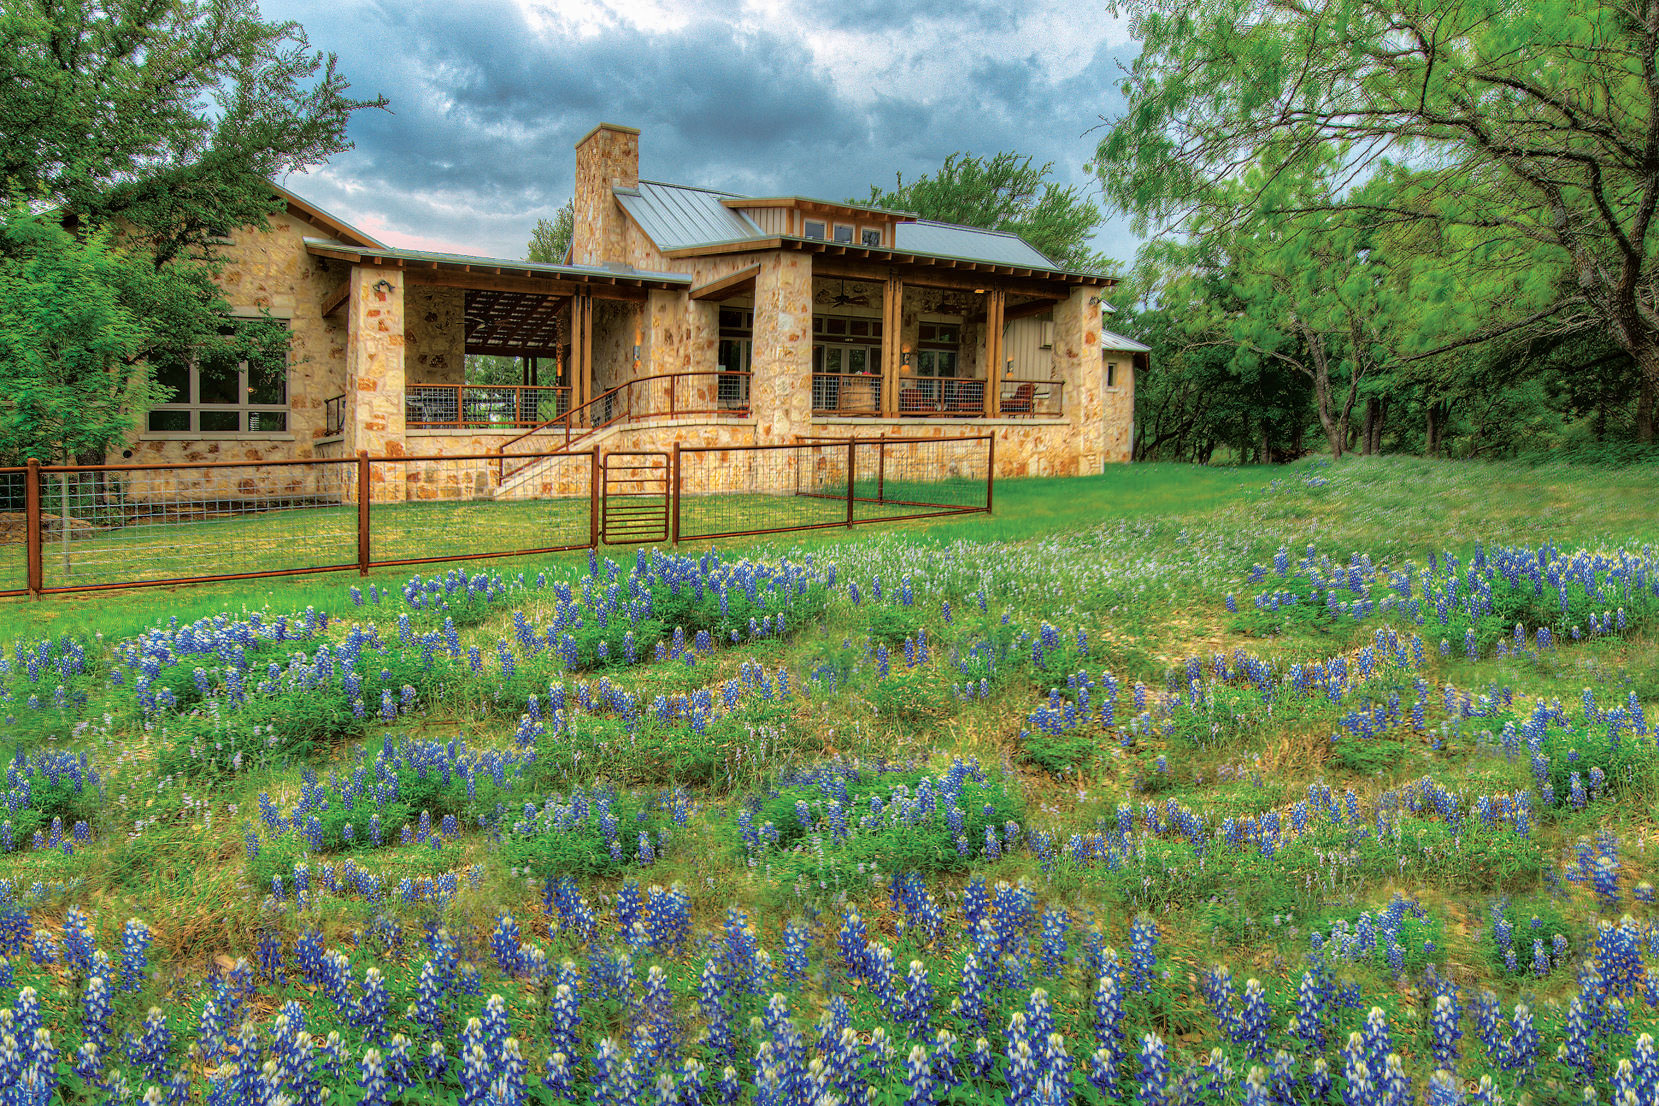 A texas hill country escape cowboys and indians magazine for Hill country houses